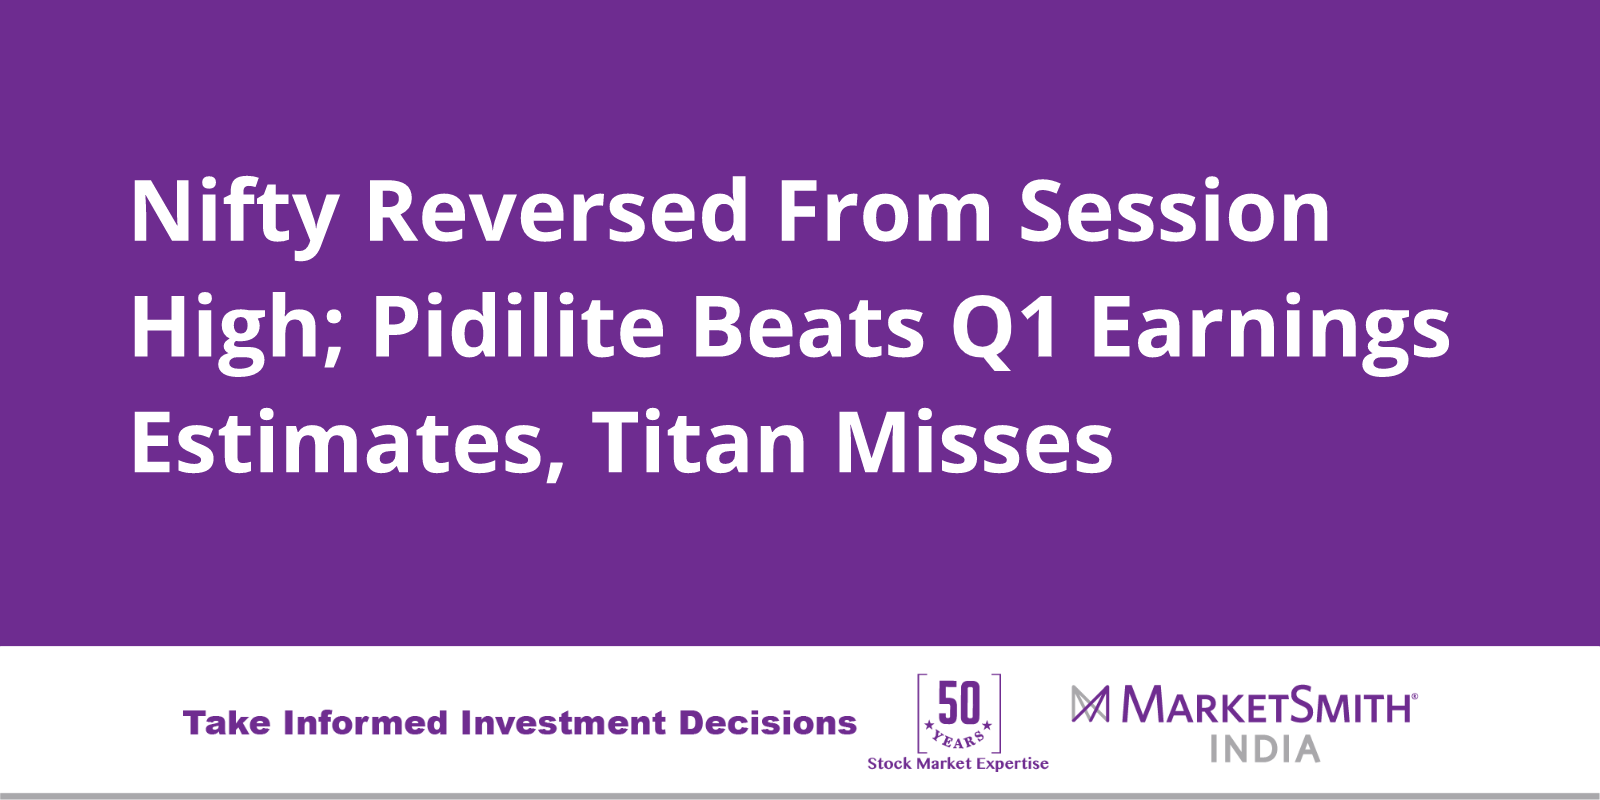 Nifty Reversed From Session High Pidilite Beats Q1 Earnings Estimates Titan Misses